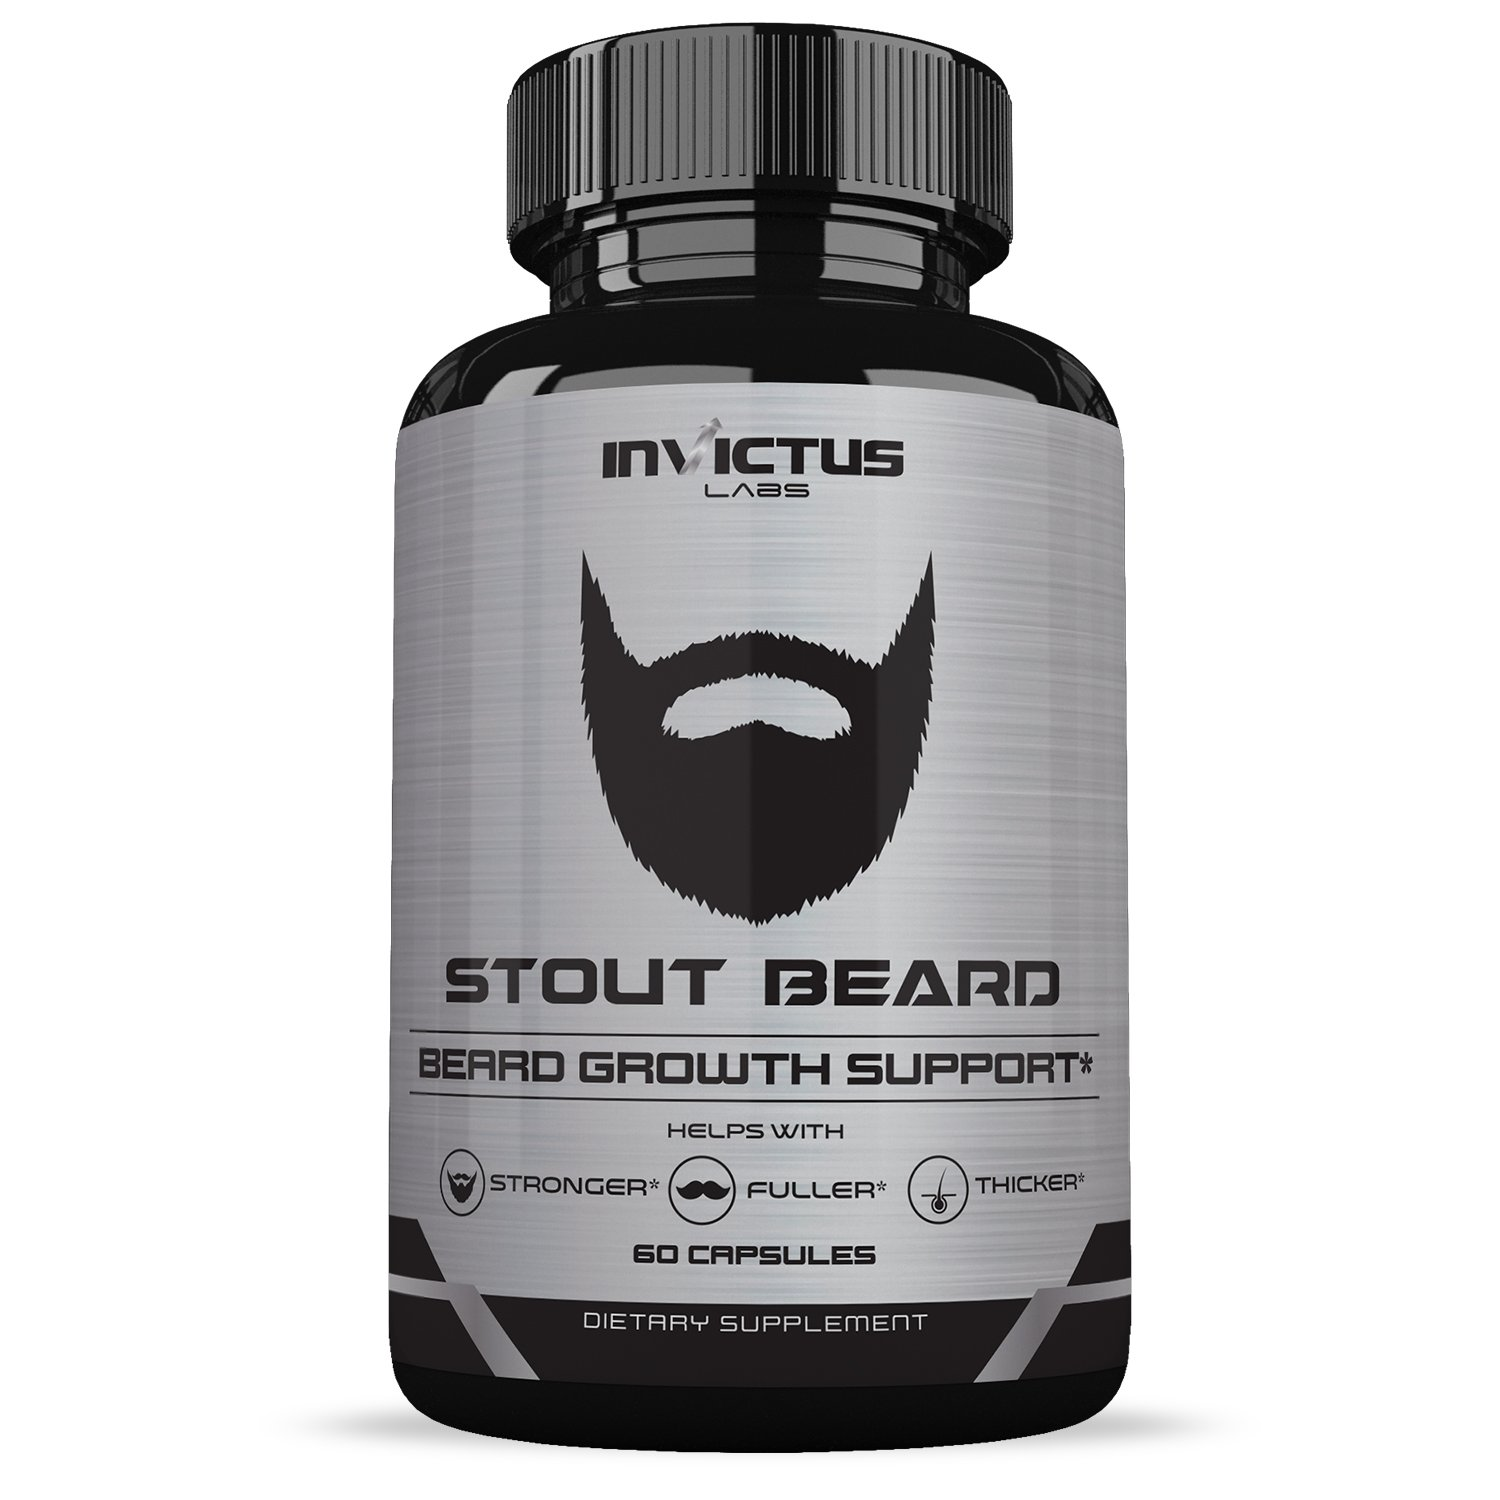 Amazon.com: Extra Strength Beard Growth Vitamin Supplement - Grows Facial Hair Fast - Thicker, Fuller Healthier Hair - Vitamins and Minerals for Naturally ...